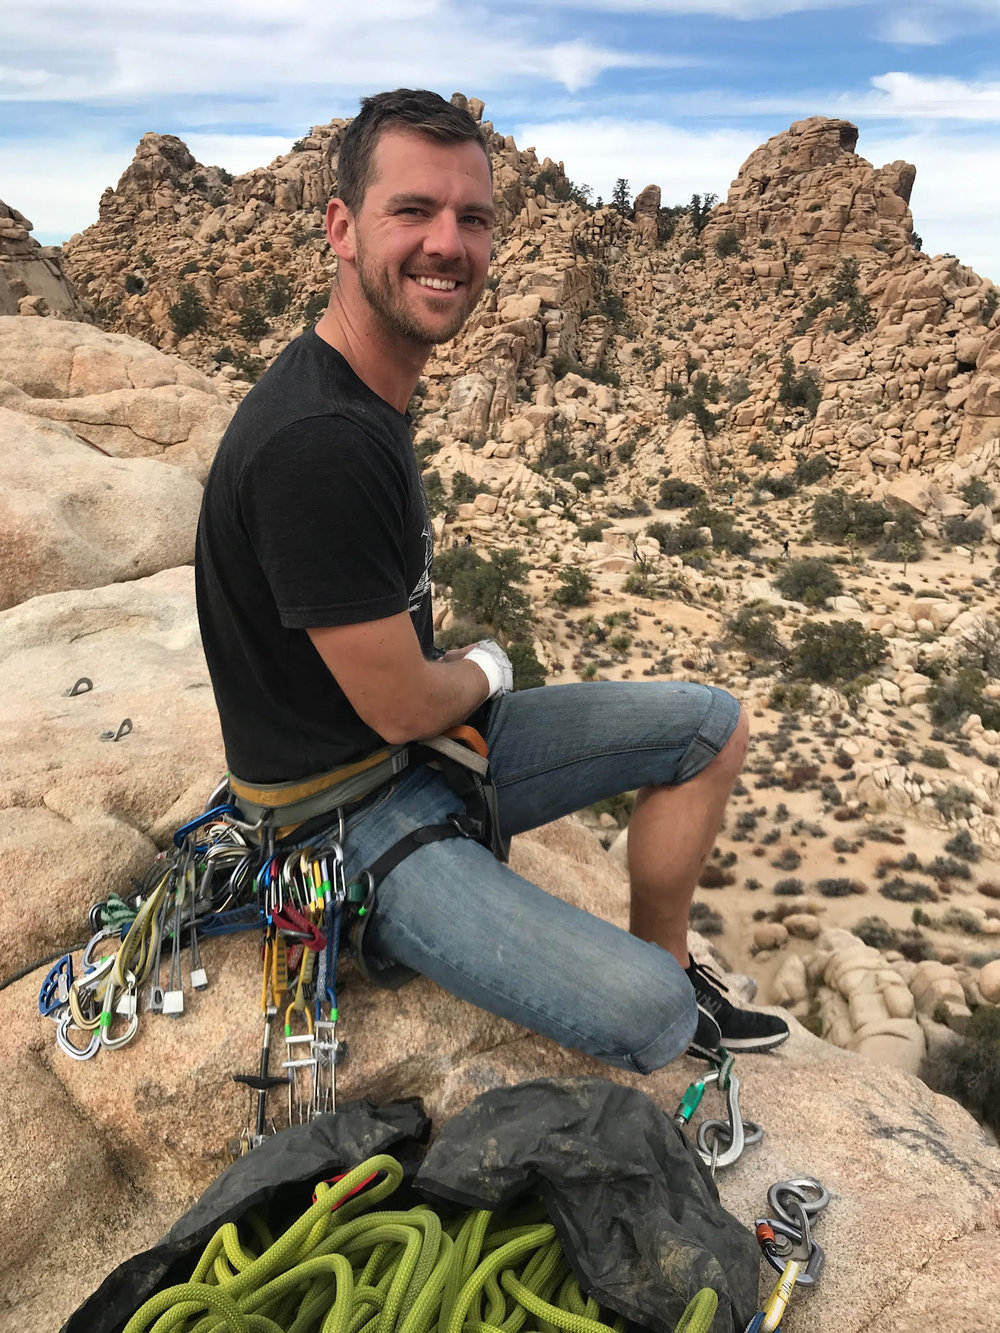 """Sean - """"Write something worth reading or do something worth writing."""" - B. FranklinI love this crazy world and I am always adventuring in it. I am a mountaineer, surfer, traveler and musician. My professional background is in business. CASD is more than just a job for me. I love what we do and I love how we do it. No getting tangled in red tape or lining the pockets of government officials. We work on the ground with locals to create true systemic change stemming from the needs of locals. We work really hard, we play really hard and we give our entire beings to helping our brothers and sisters in Nepal. I am so proud to call myself a founding member of the CASD team."""